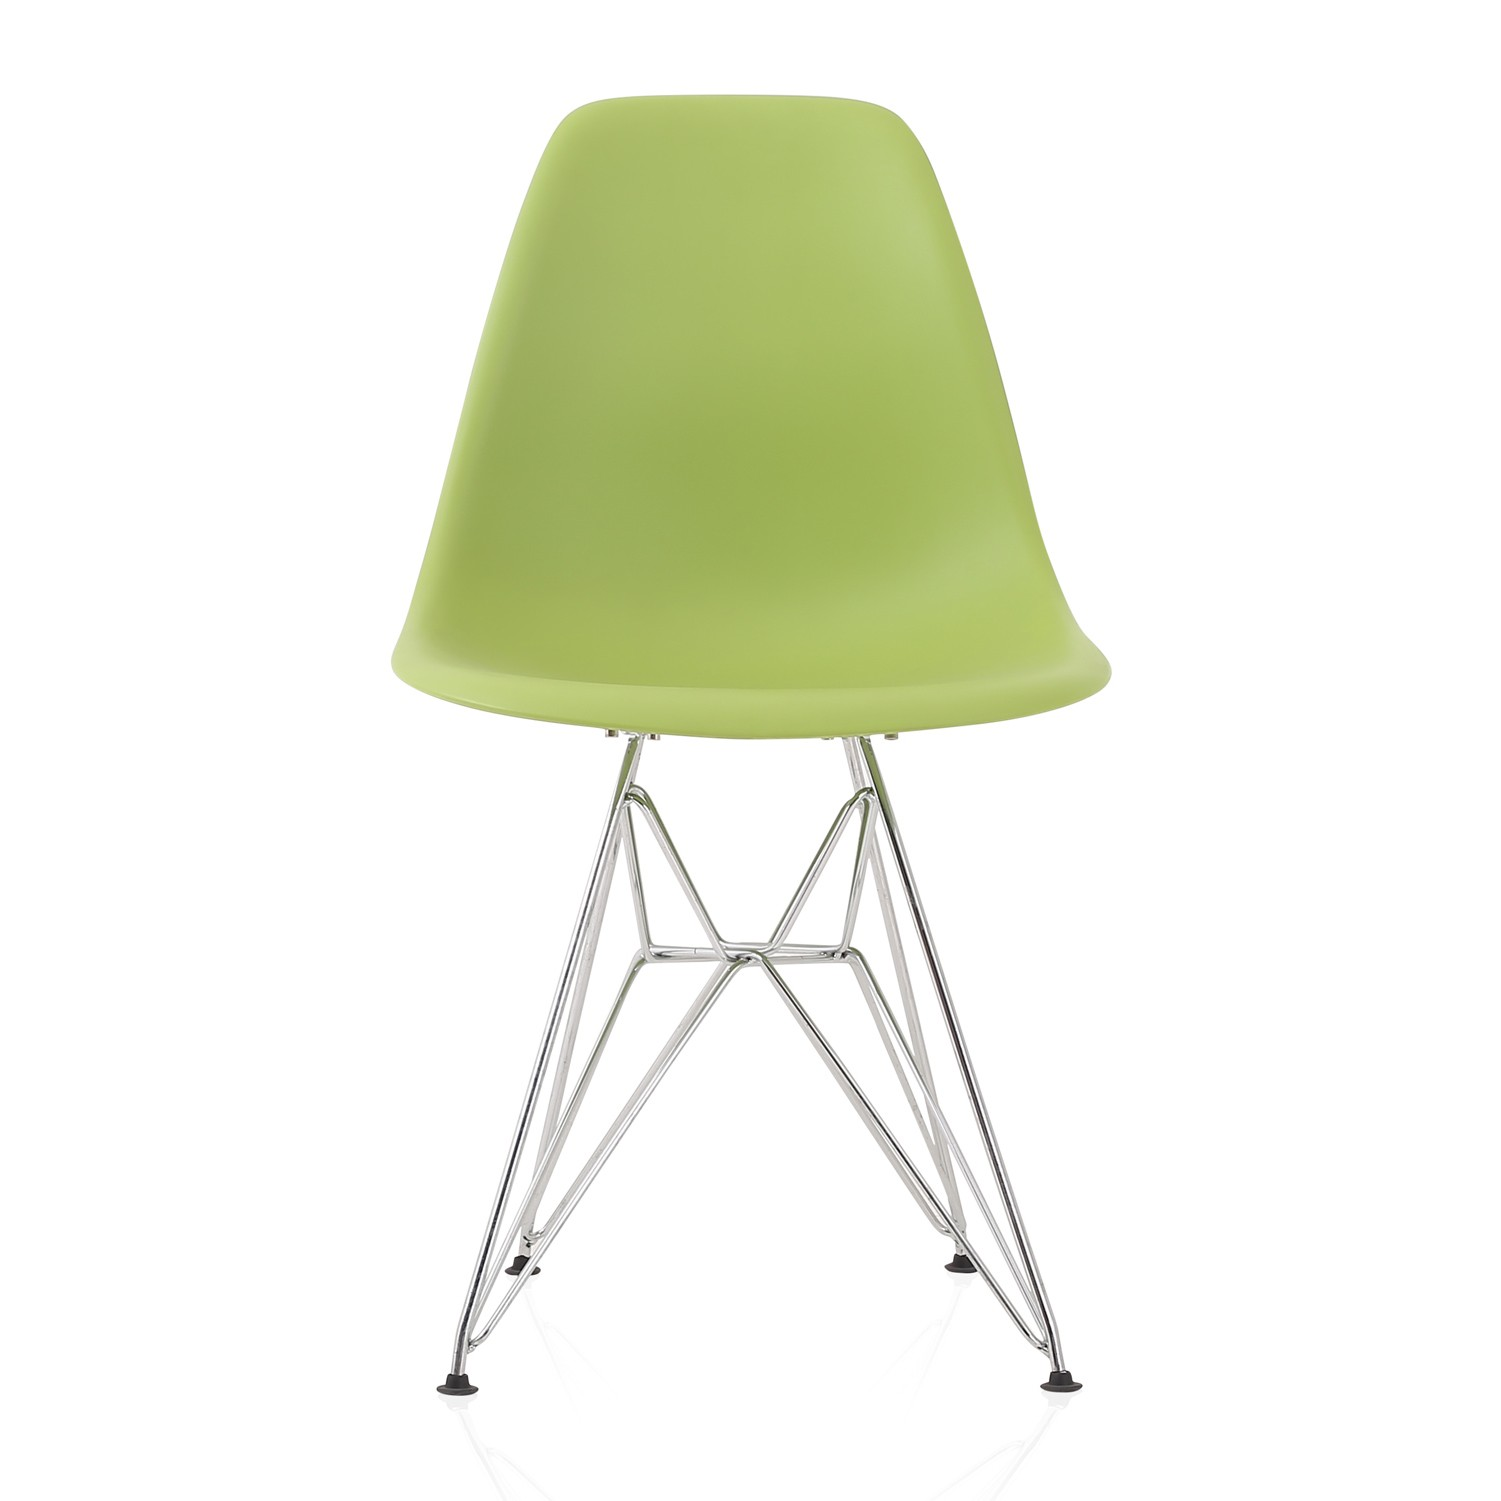 plastic chairs with steel legs lightweight aluminum webbed folding lawn eames style dsr molded lime green dining shell